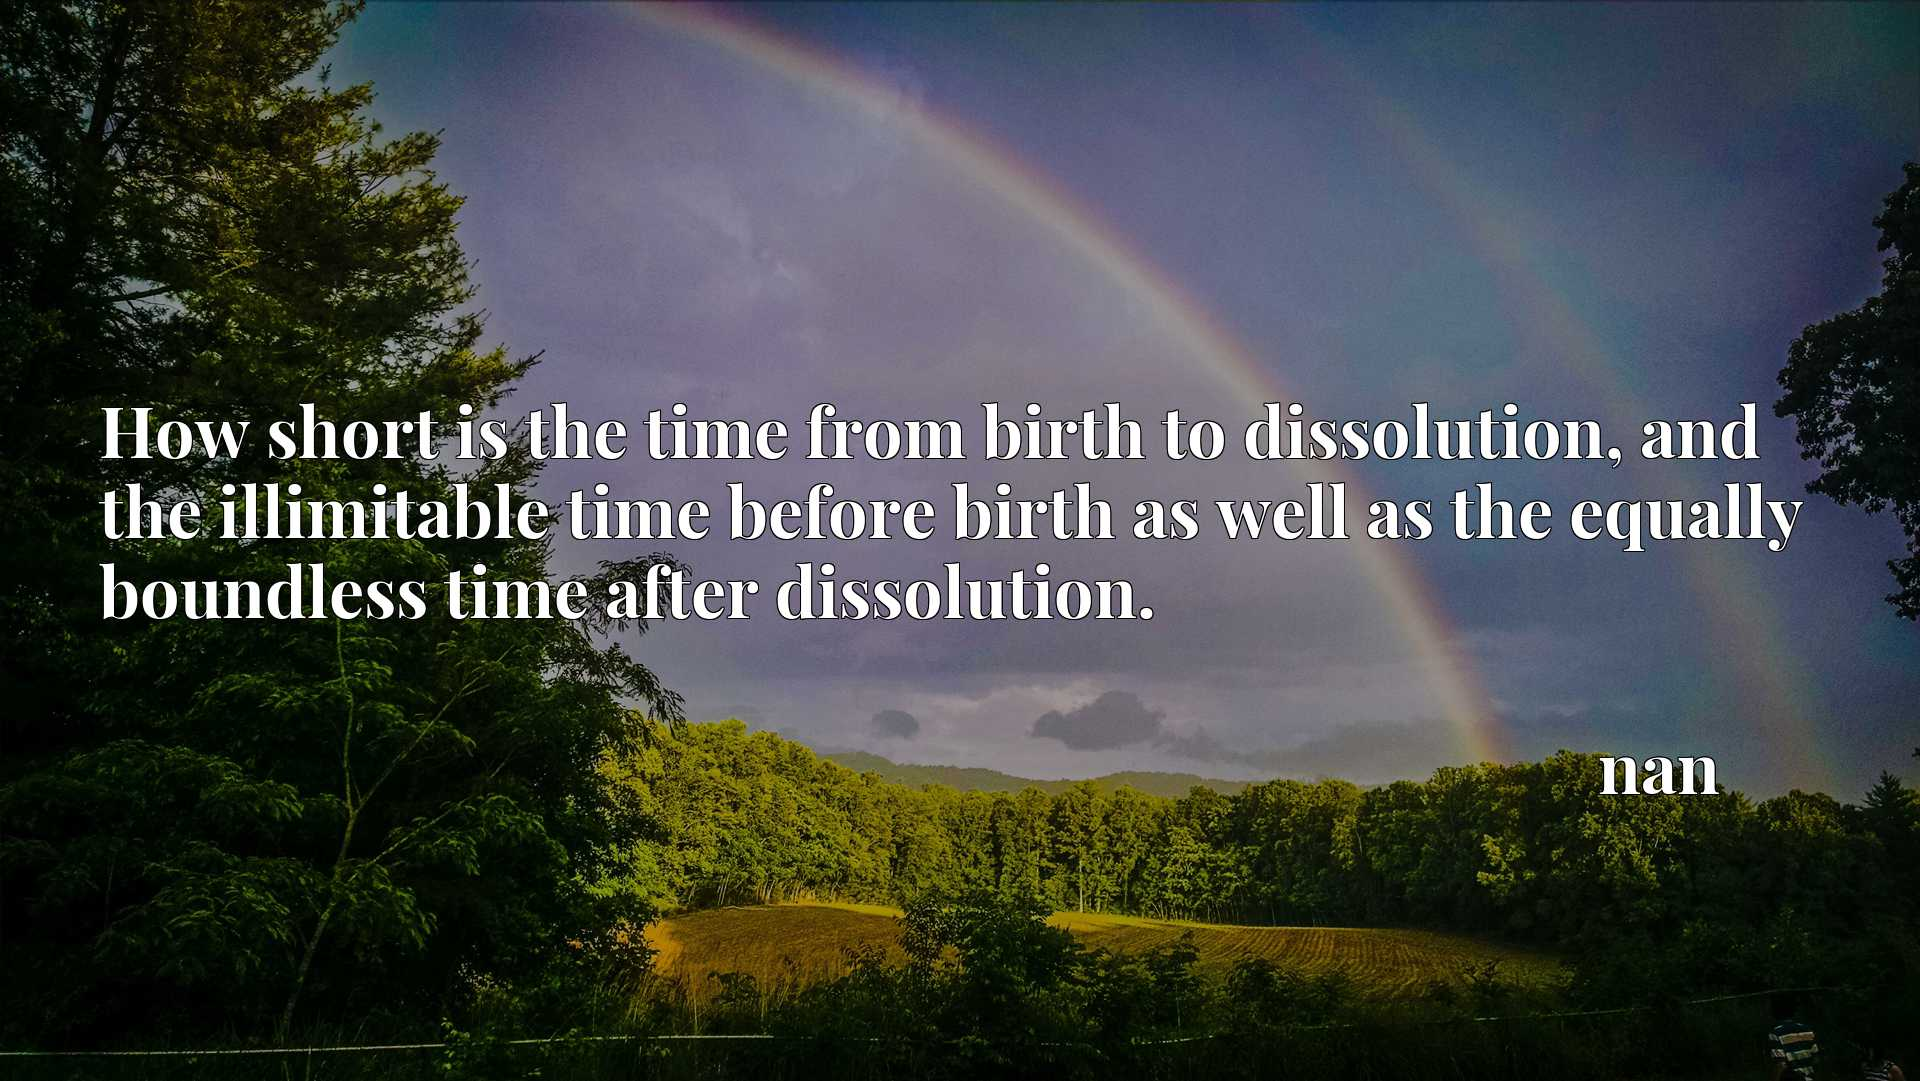 How short is the time from birth to dissolution, and the illimitable time before birth as well as the equally boundless time after dissolution.